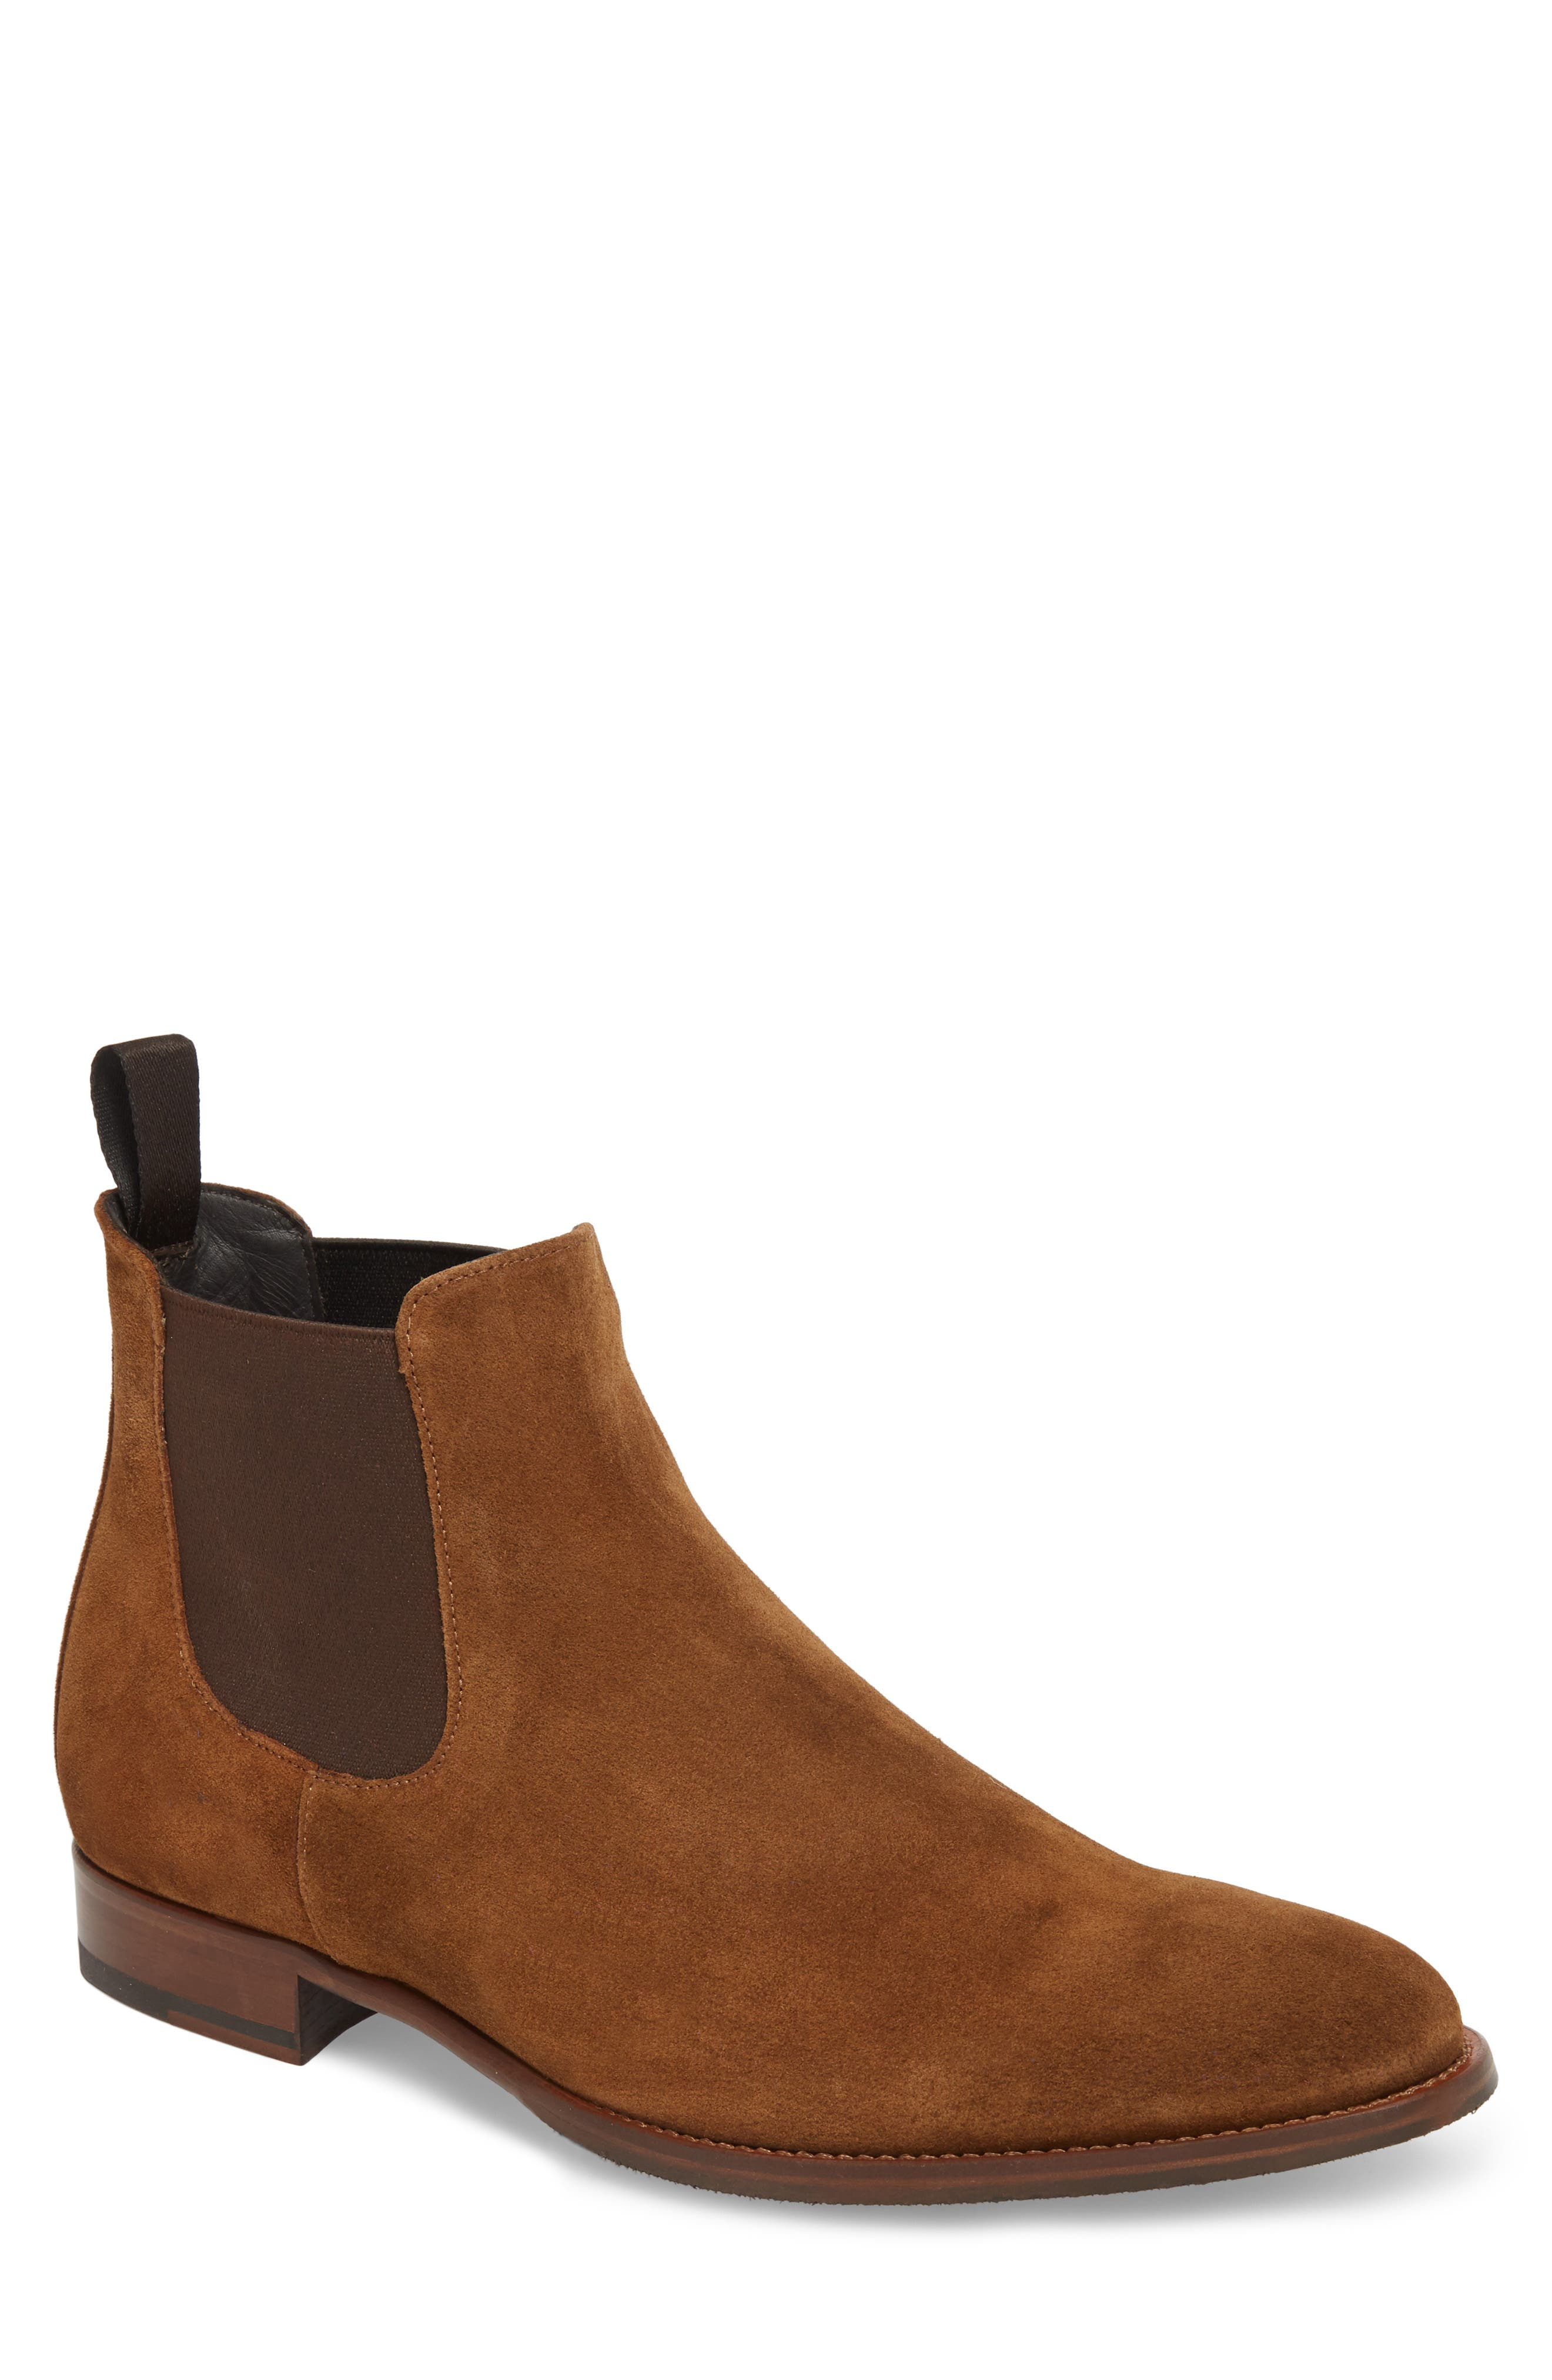 Shelby Mid Chelsea Boot,                         Main,                         color, BROWN LEATHER